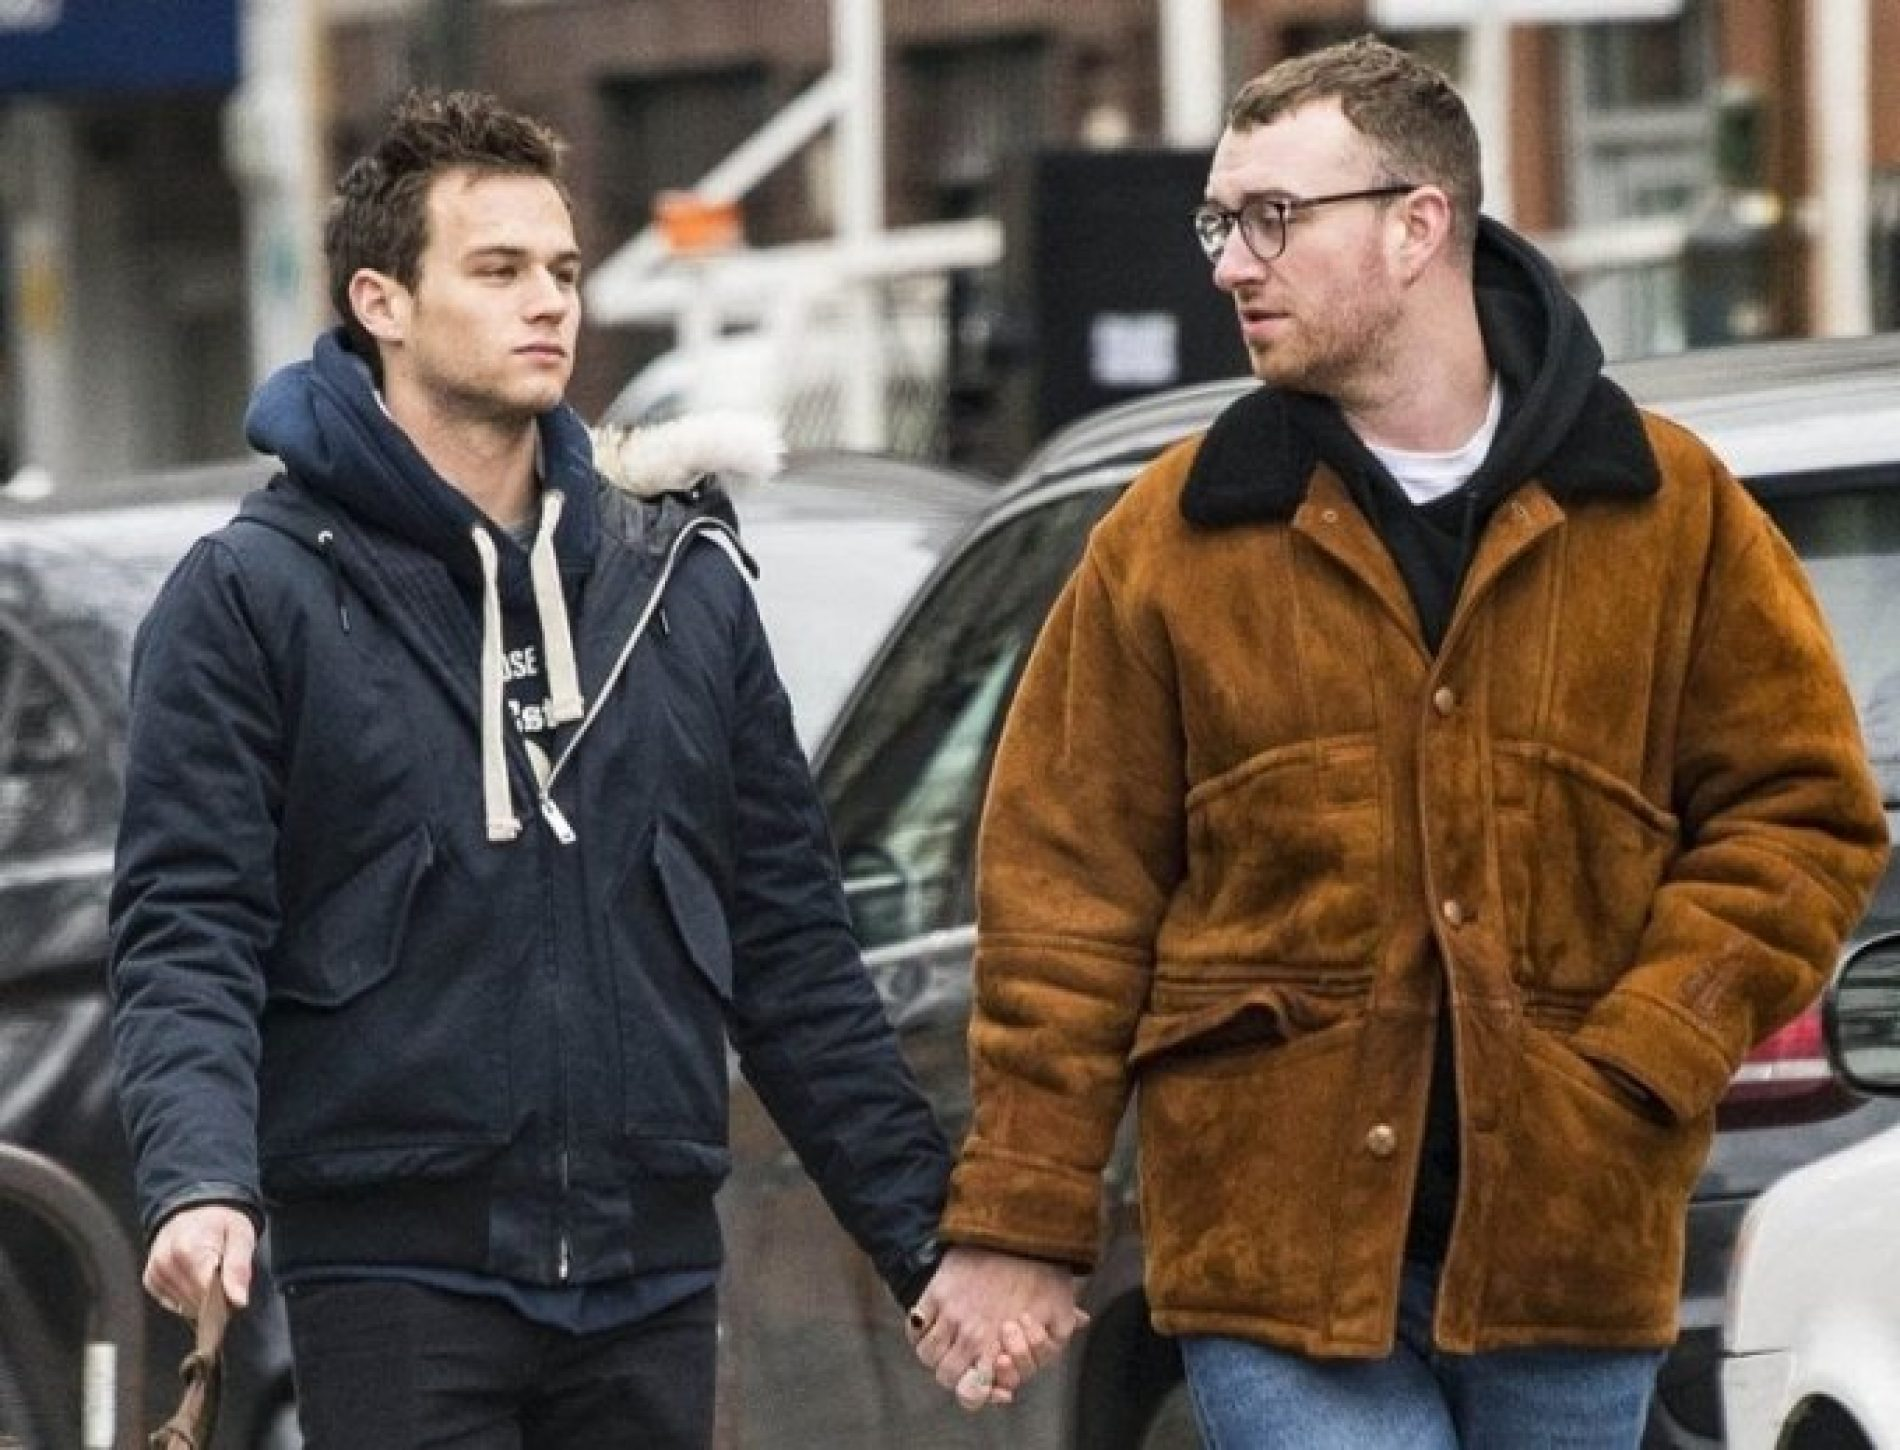 Sam Smith split from Brandon Flynn after nine months together, admits he's having a tough time post breakup